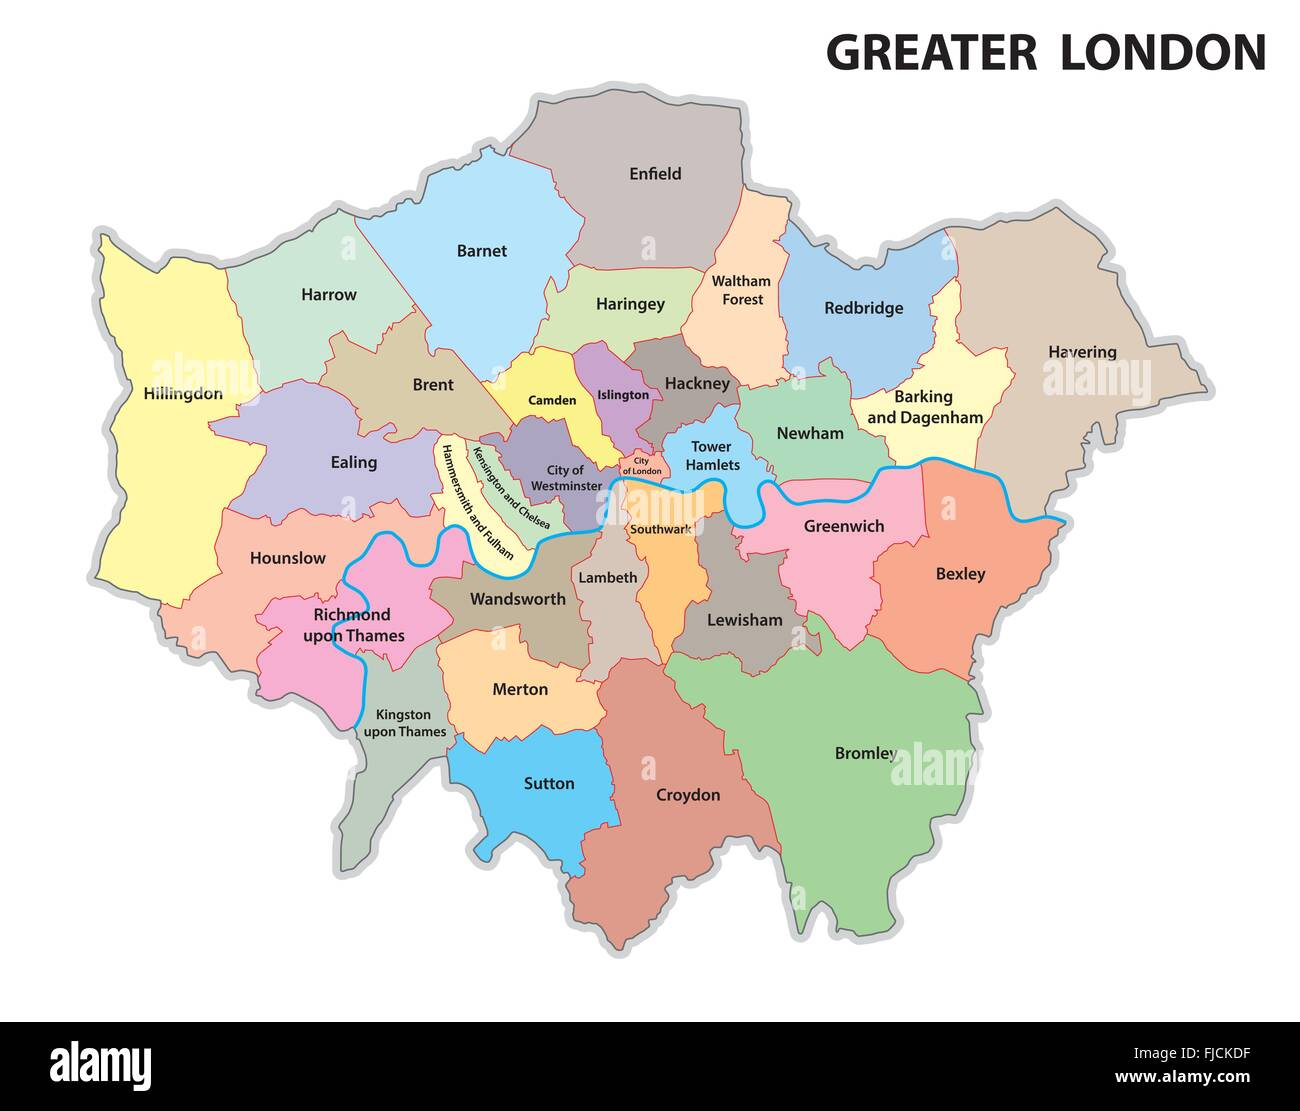 Greater London Administrative Map Stock Vector Art Illustration